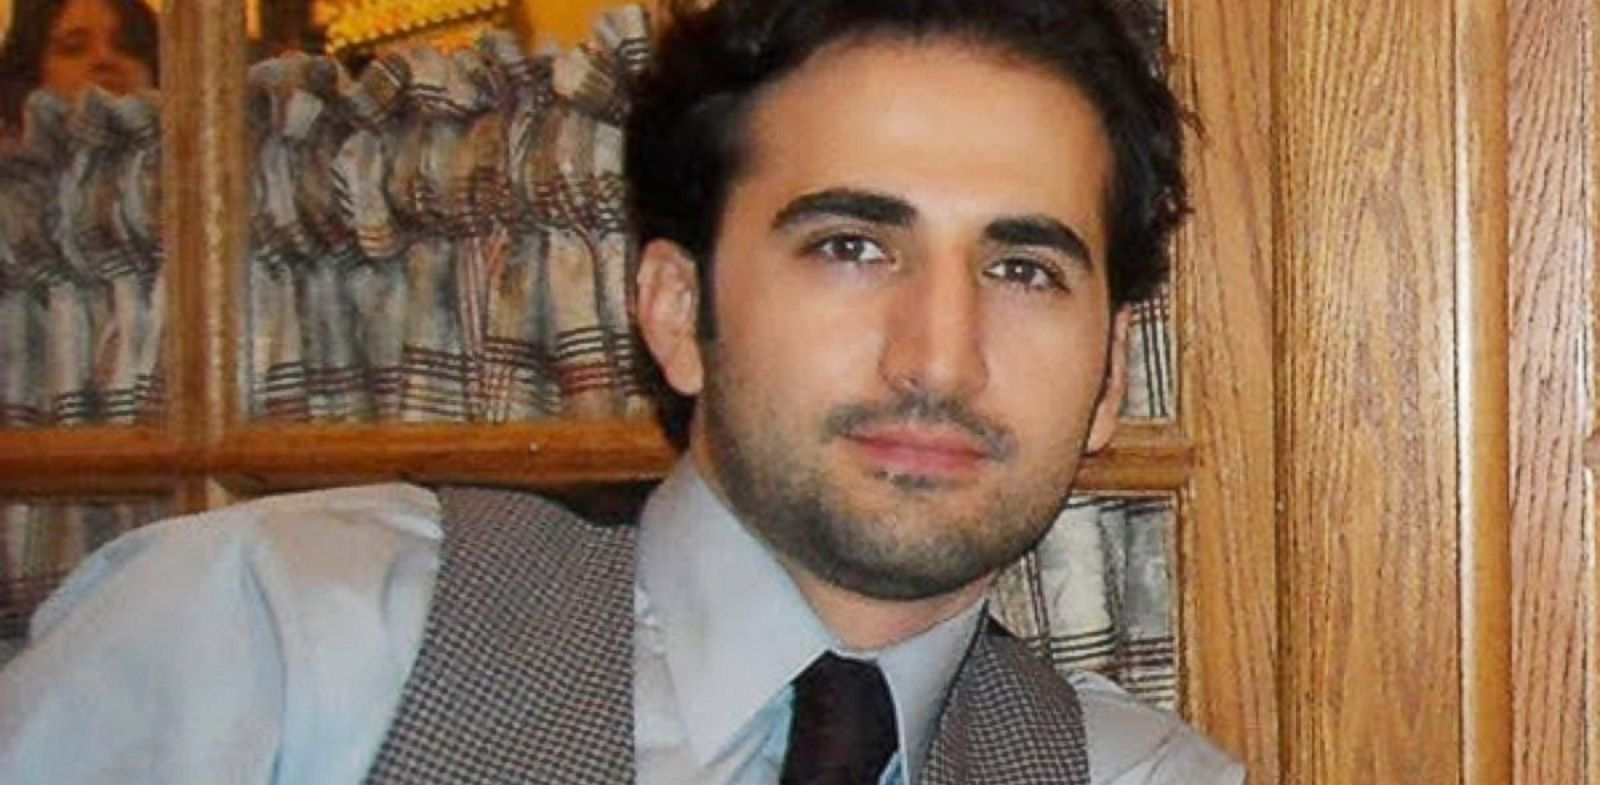 PHOTO: Former U.S. Marine Amir Hekmati is shown in this undated photo.